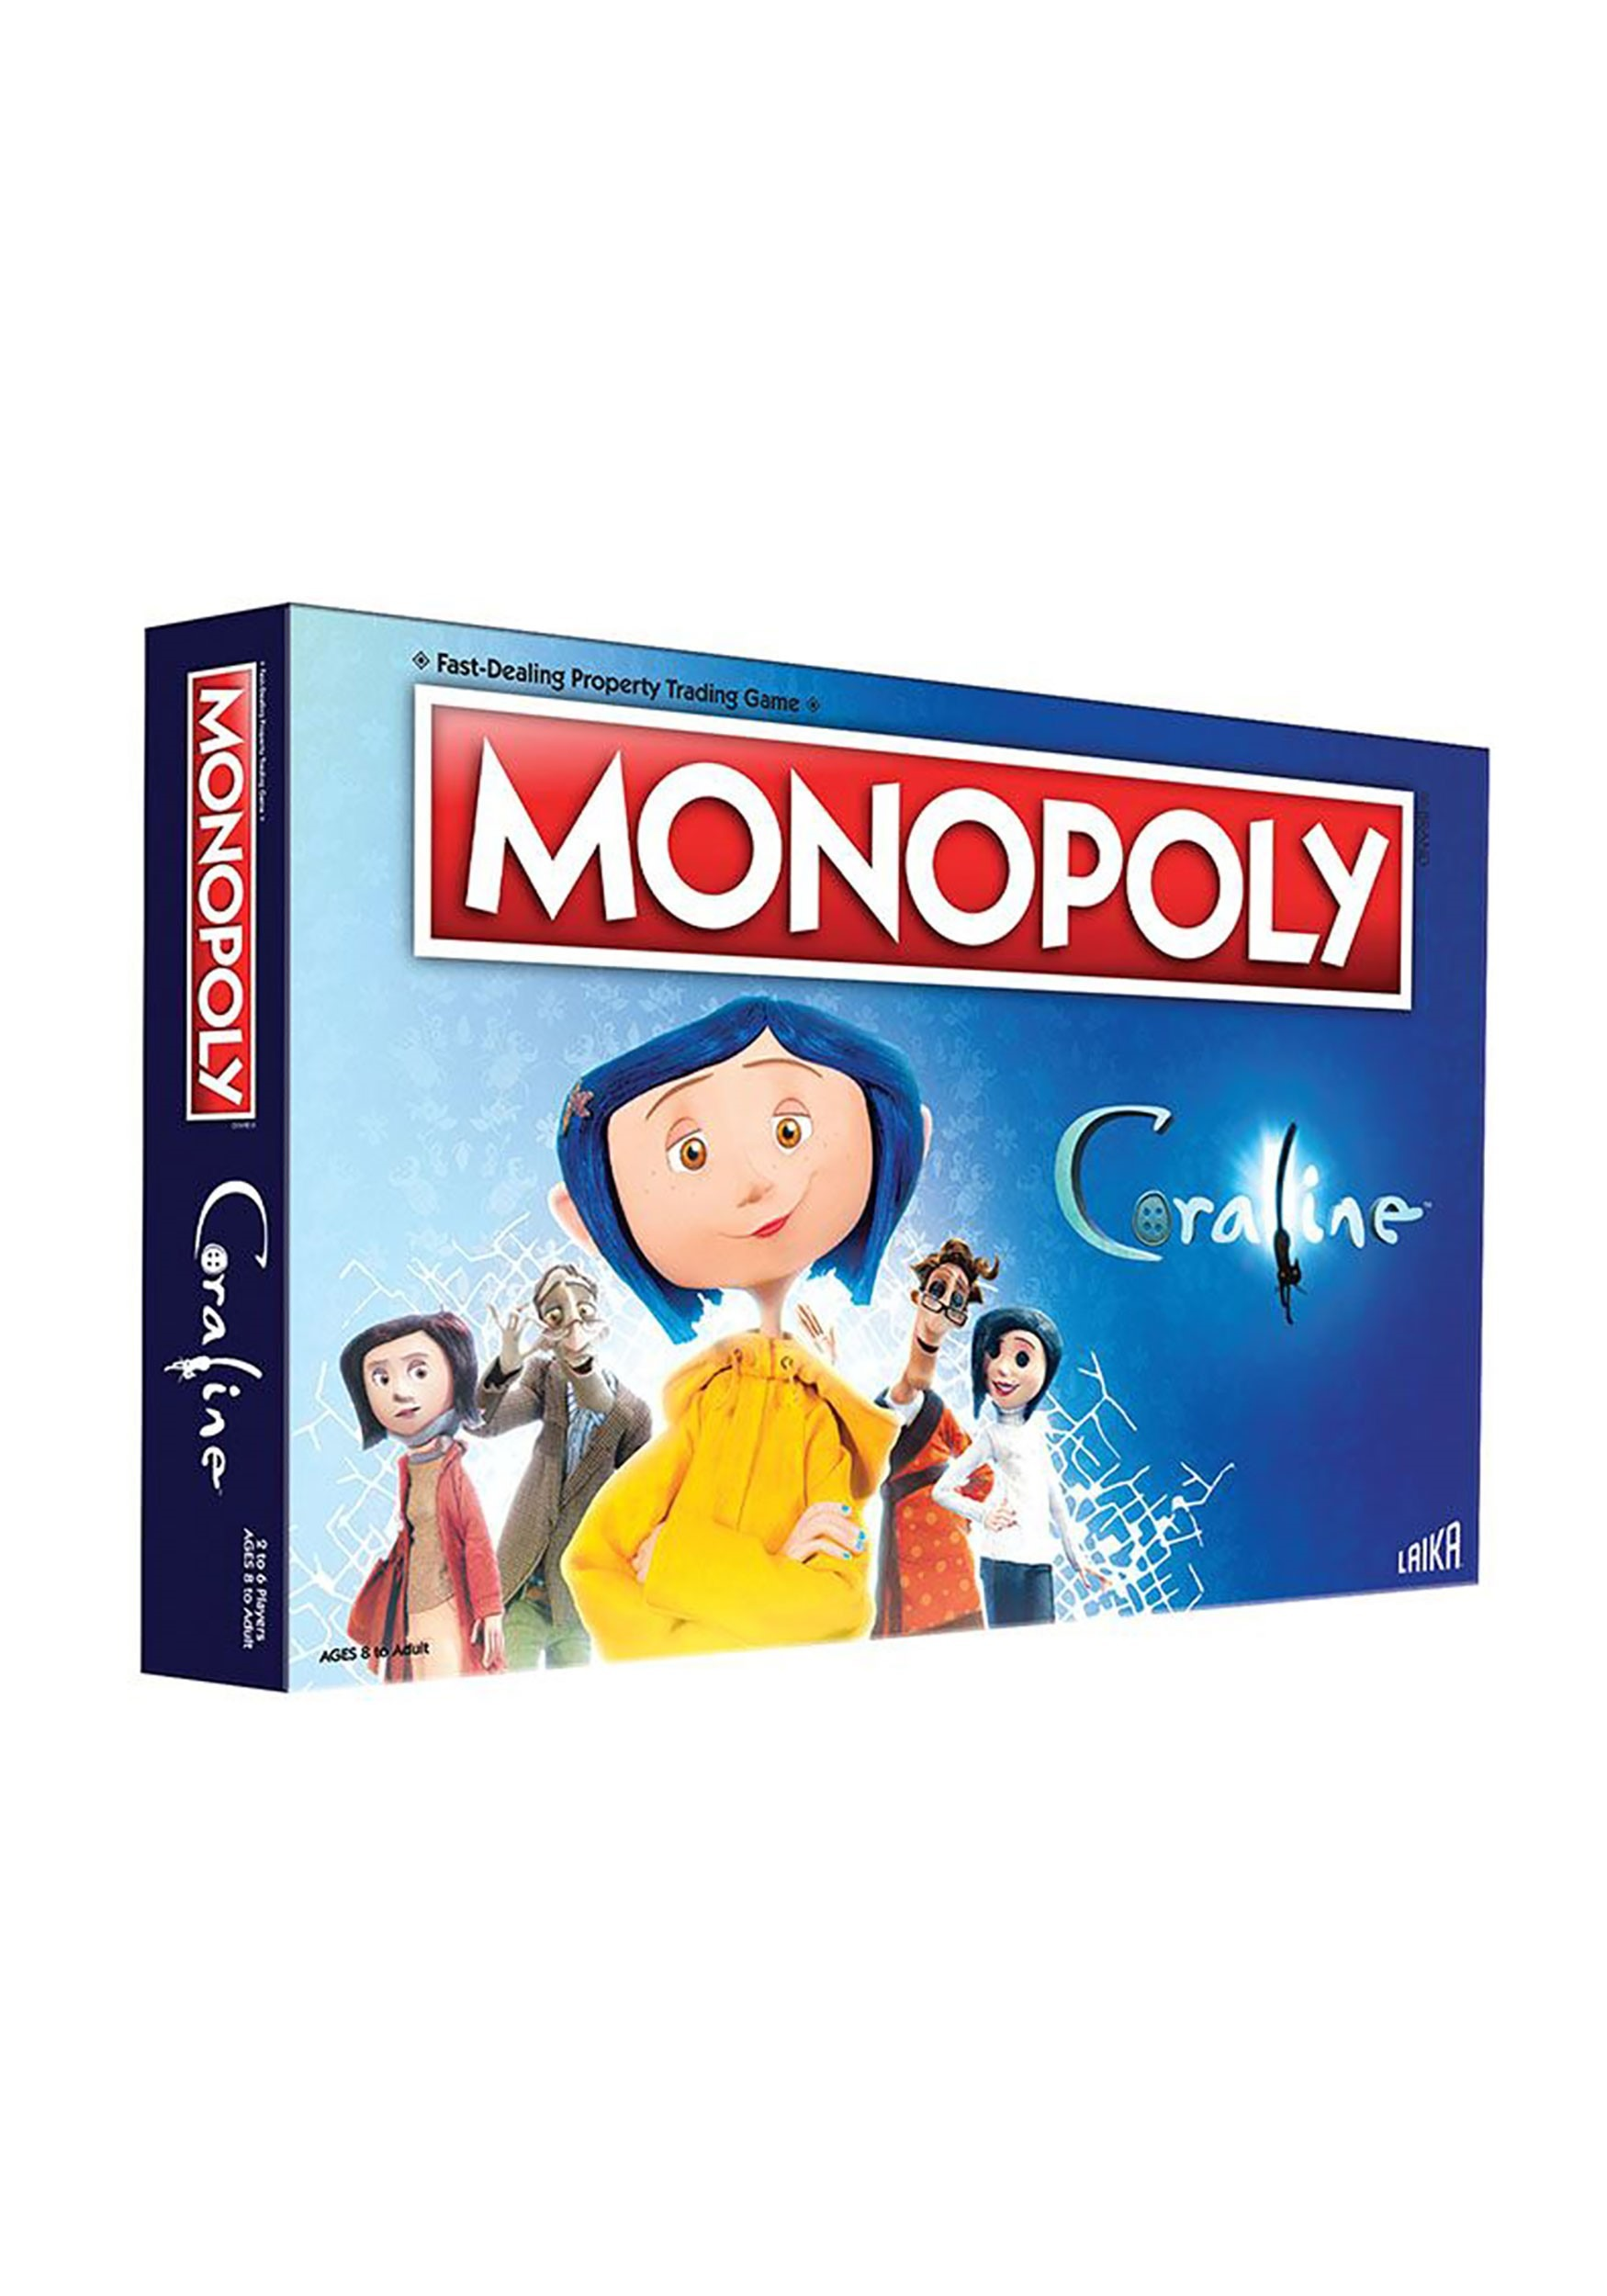 MONOPOLY Coraline Board Game